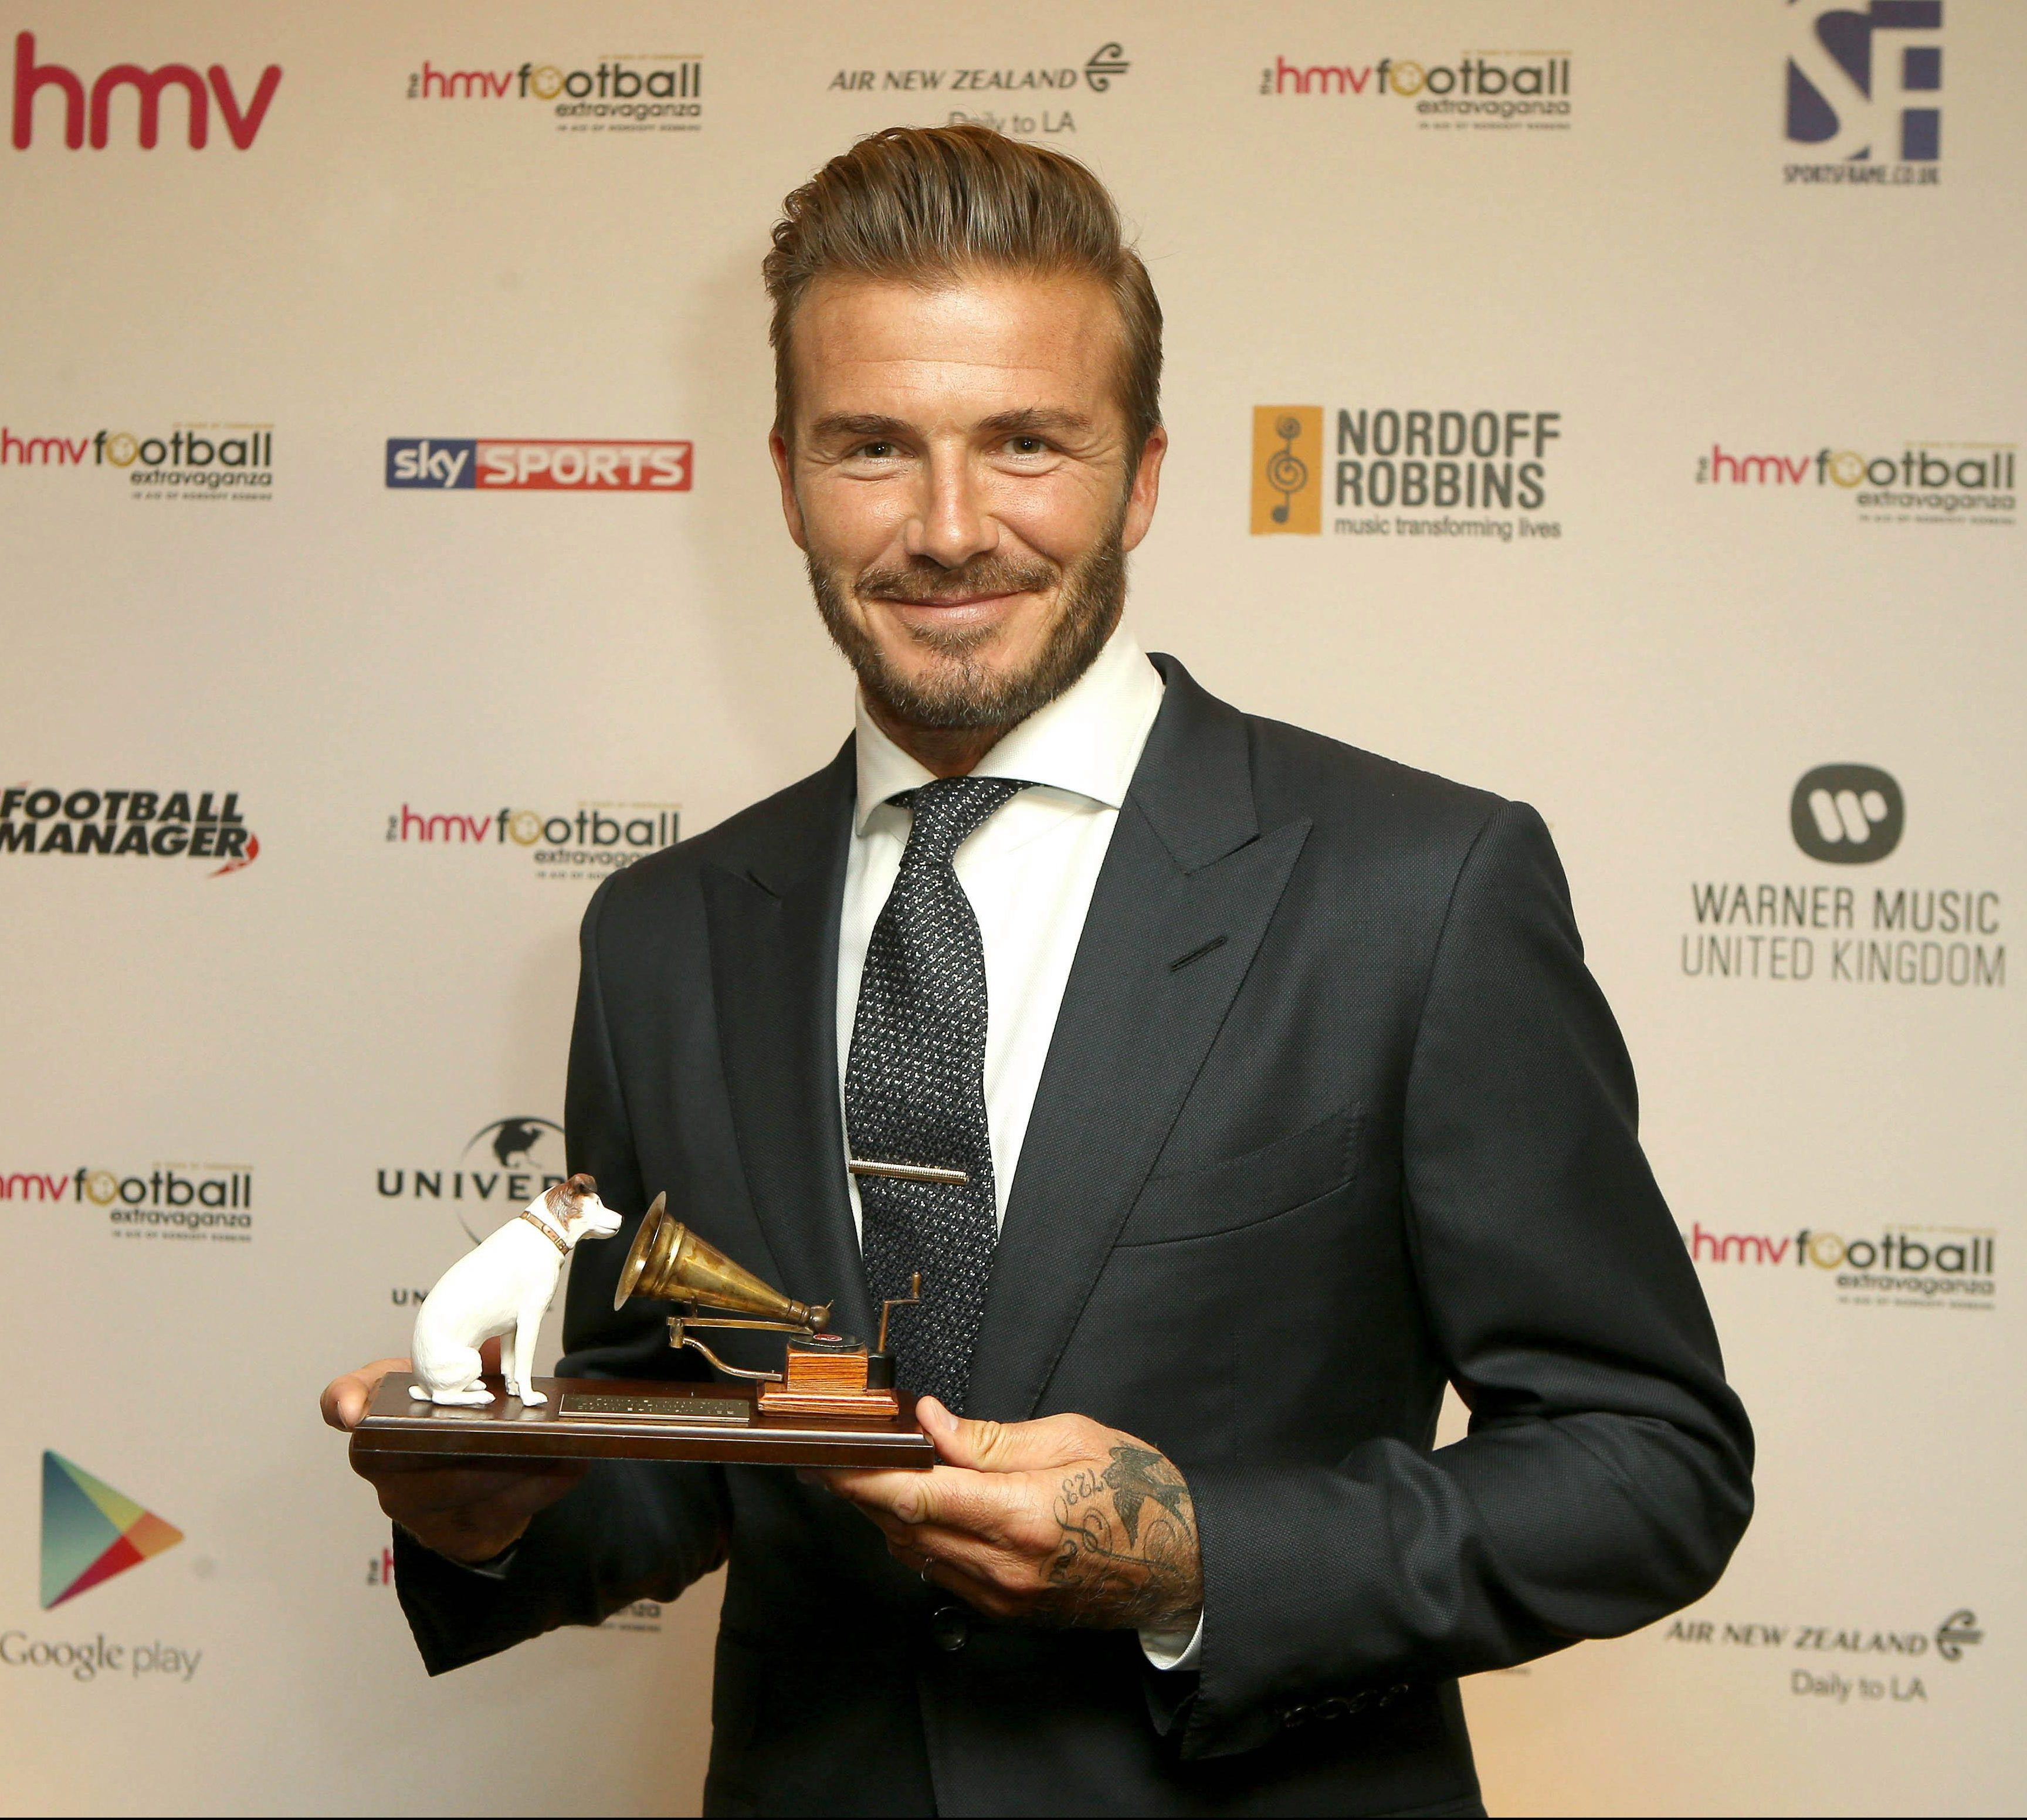 David Beckham was the recipient in 2015, two years after hanging up his boots